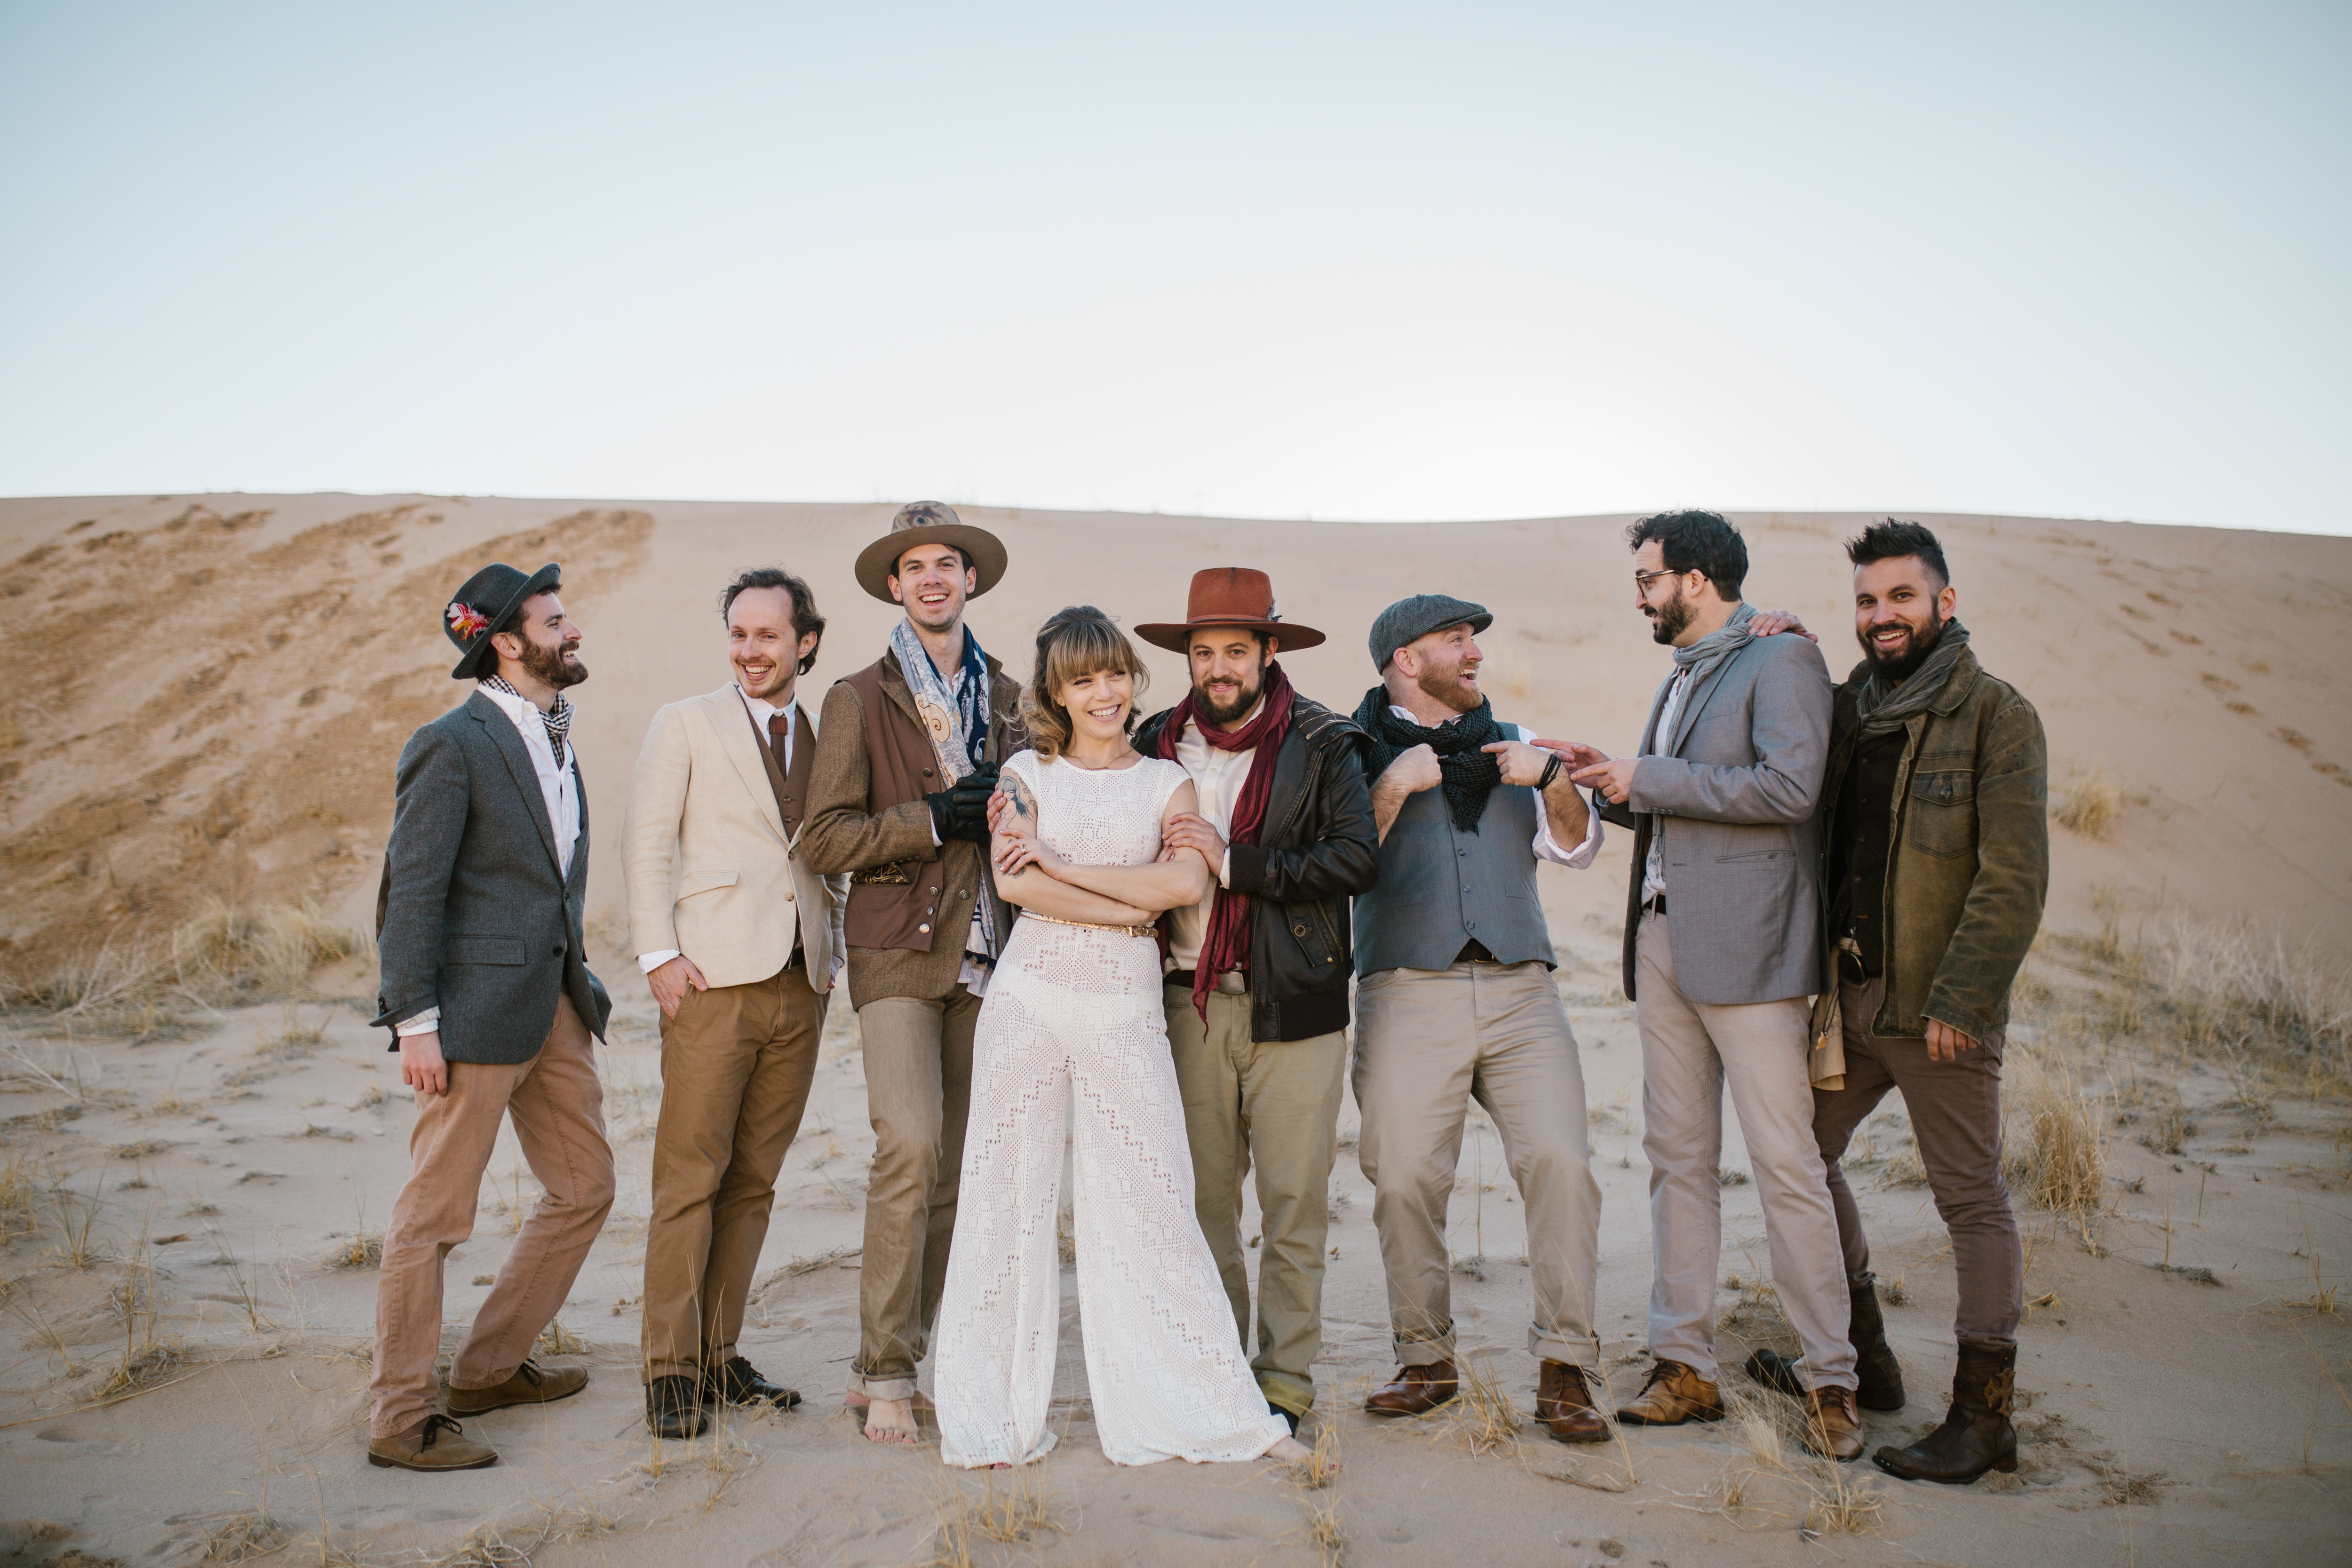 Dustbowl Revival Headlines Bluegrass Fest at American Theatre